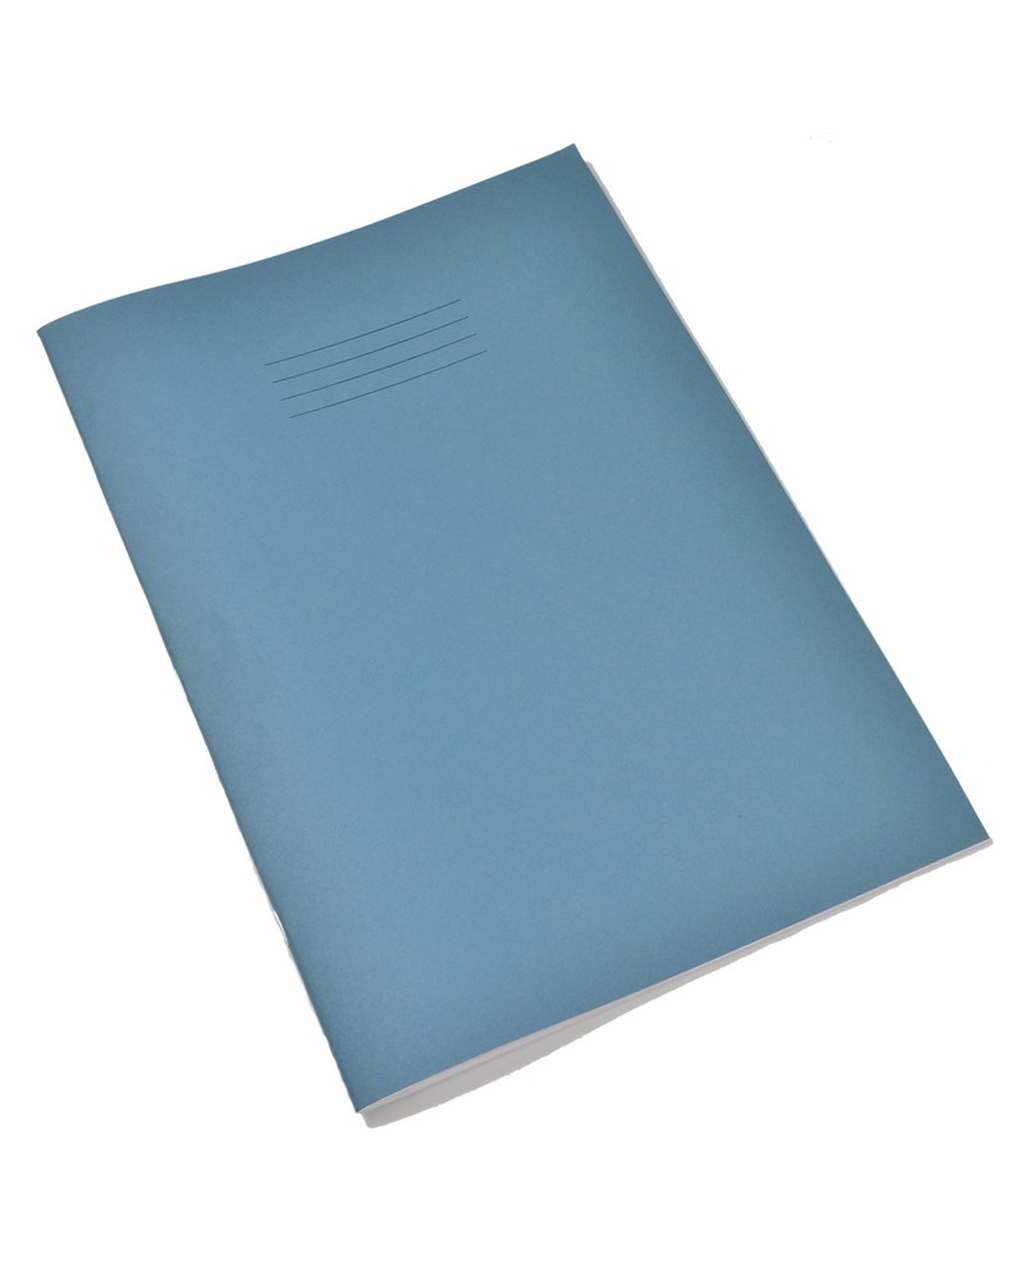 A4 Tinted Ex Books 12mm Ruled & Margin Cream Paper, Light Blue Cover